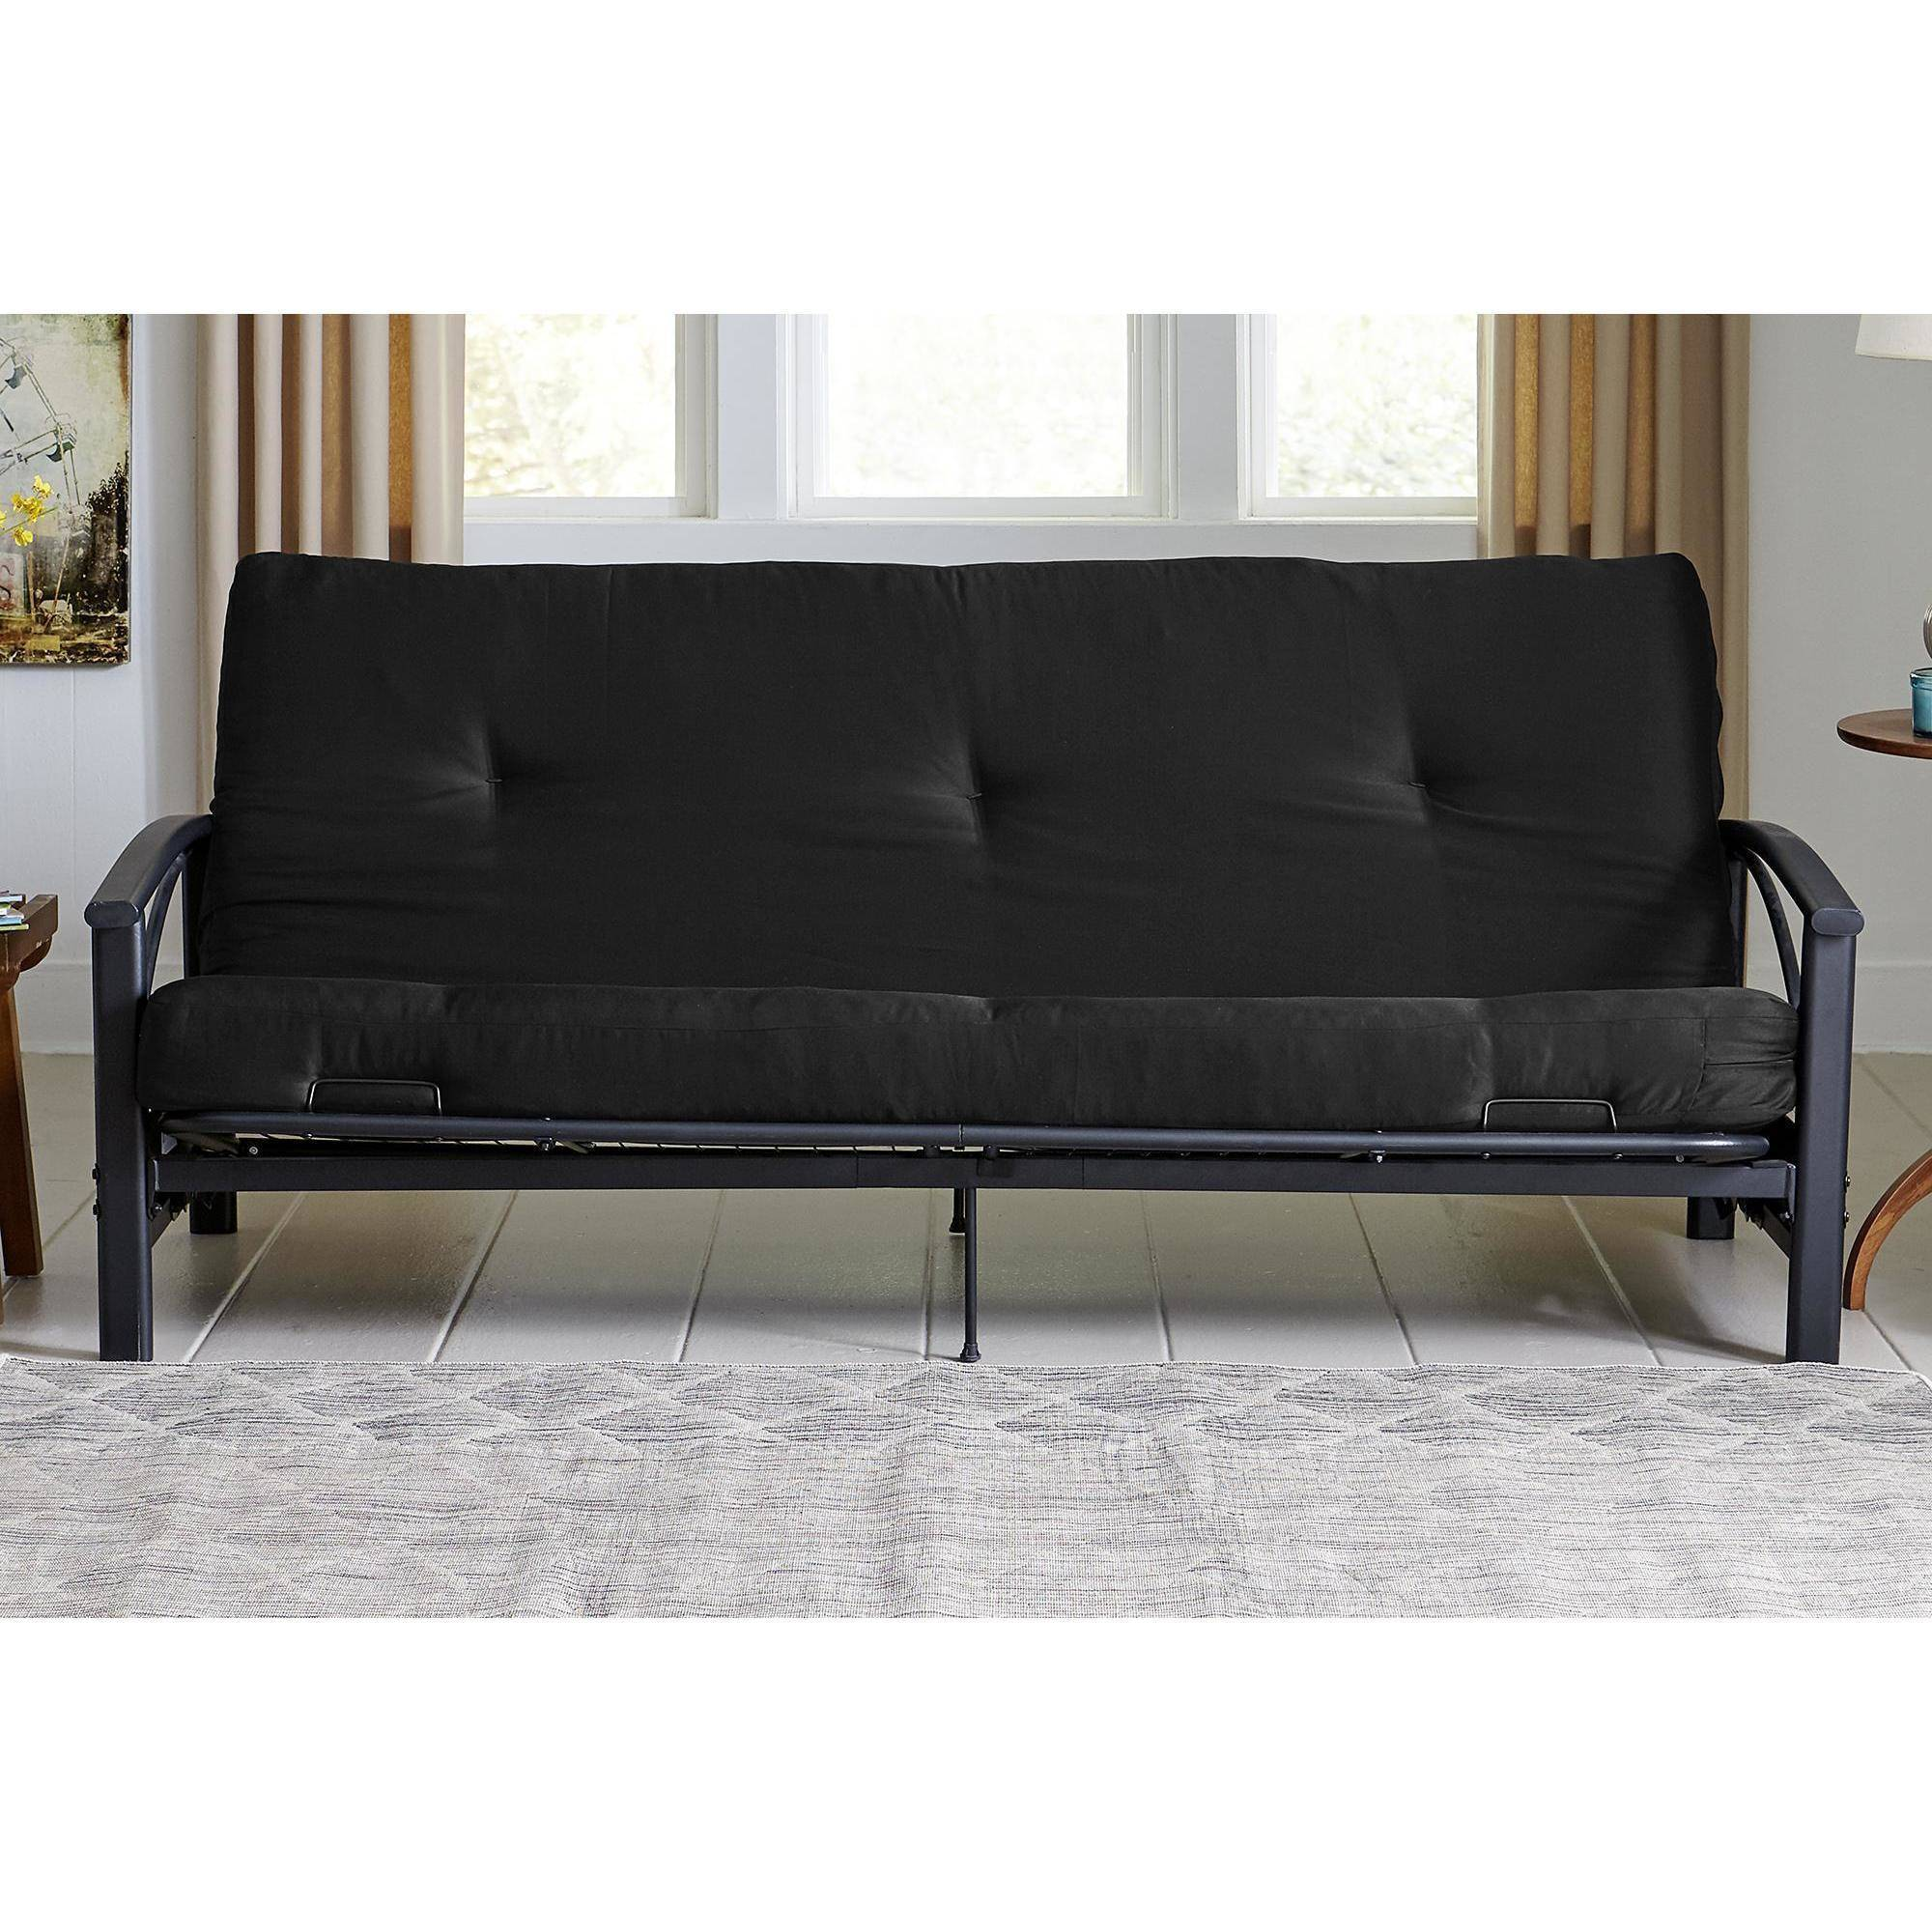 for sofa sleeper comfortable bed spaces couch target small sectional loveseat comforter futon